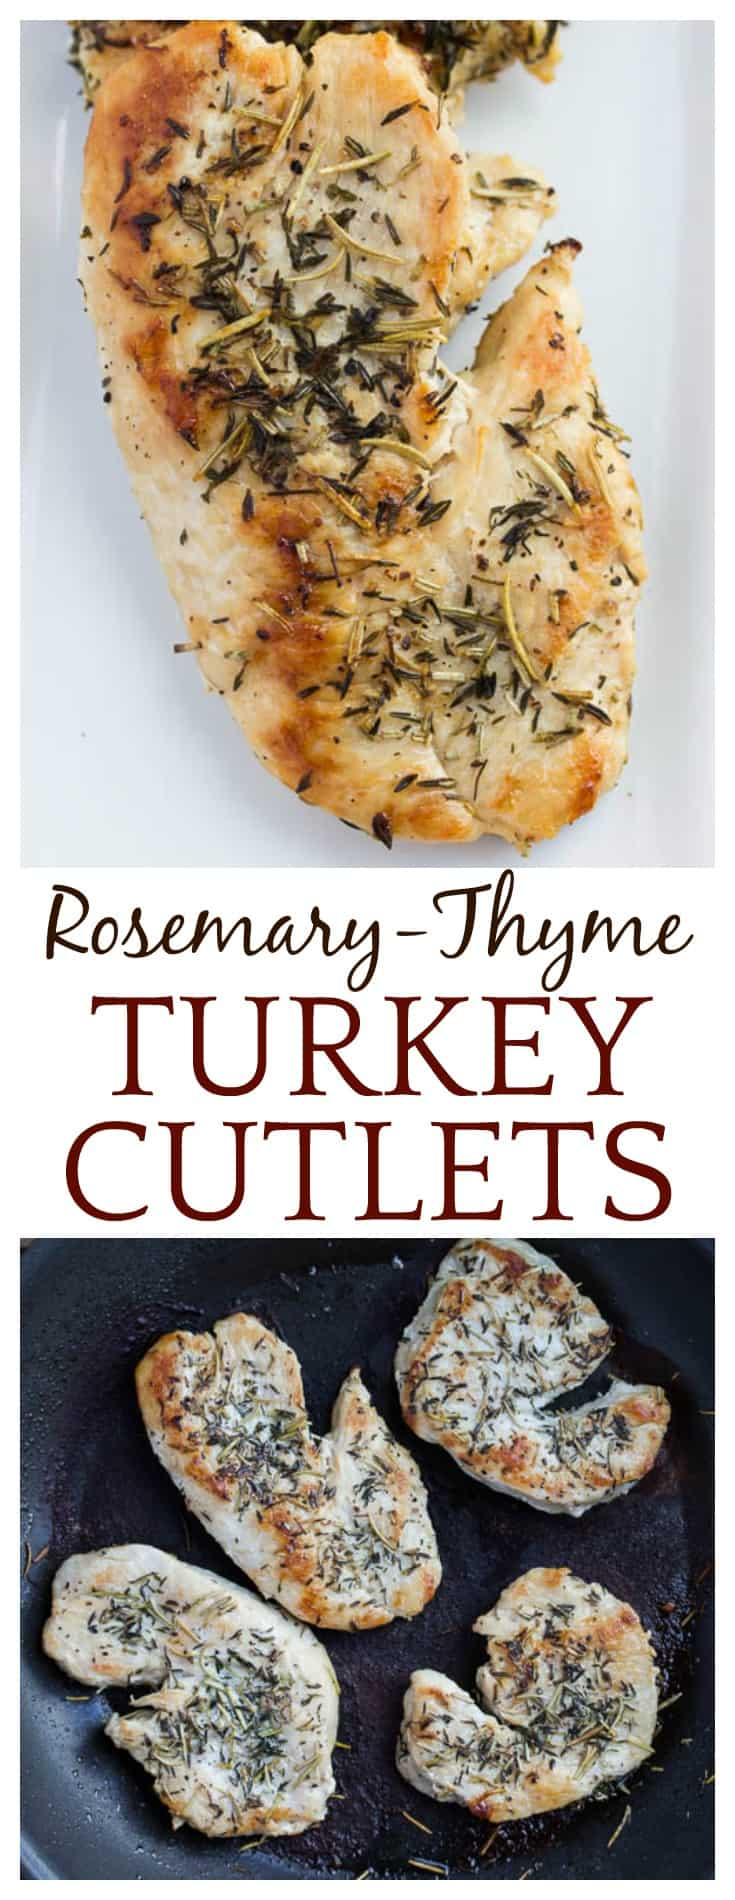 Who says turkey is only for Thanksgiving Day? This recipe for Rosemary-Thyme Turkey Cutlets makes an easy dinner for weeknights, but also works great for company. This recipe naturally gluten free and low carb, and kids love it too! It's family friendly and ready in less than 20 minutes! | #turkeyrecipe #turkey #turkeycutlets #herbedturkey #DLB